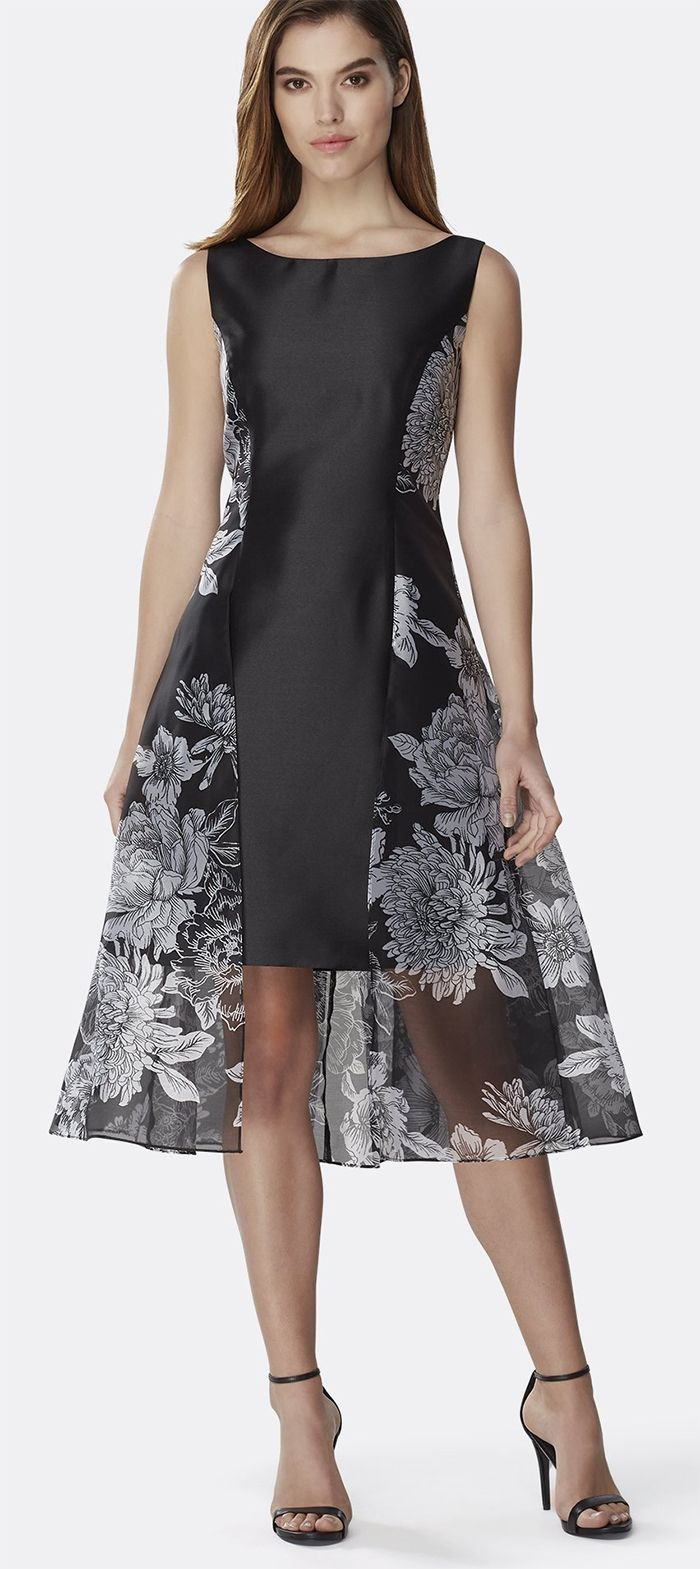 Black And White Dress For The Races Entrance Making Sheath Flaunts A Sheer Handkerchief Overlay Kentucky Derby Dress Wedding Guest Outfit Spring Guest Outfit [ 1569 x 700 Pixel ]